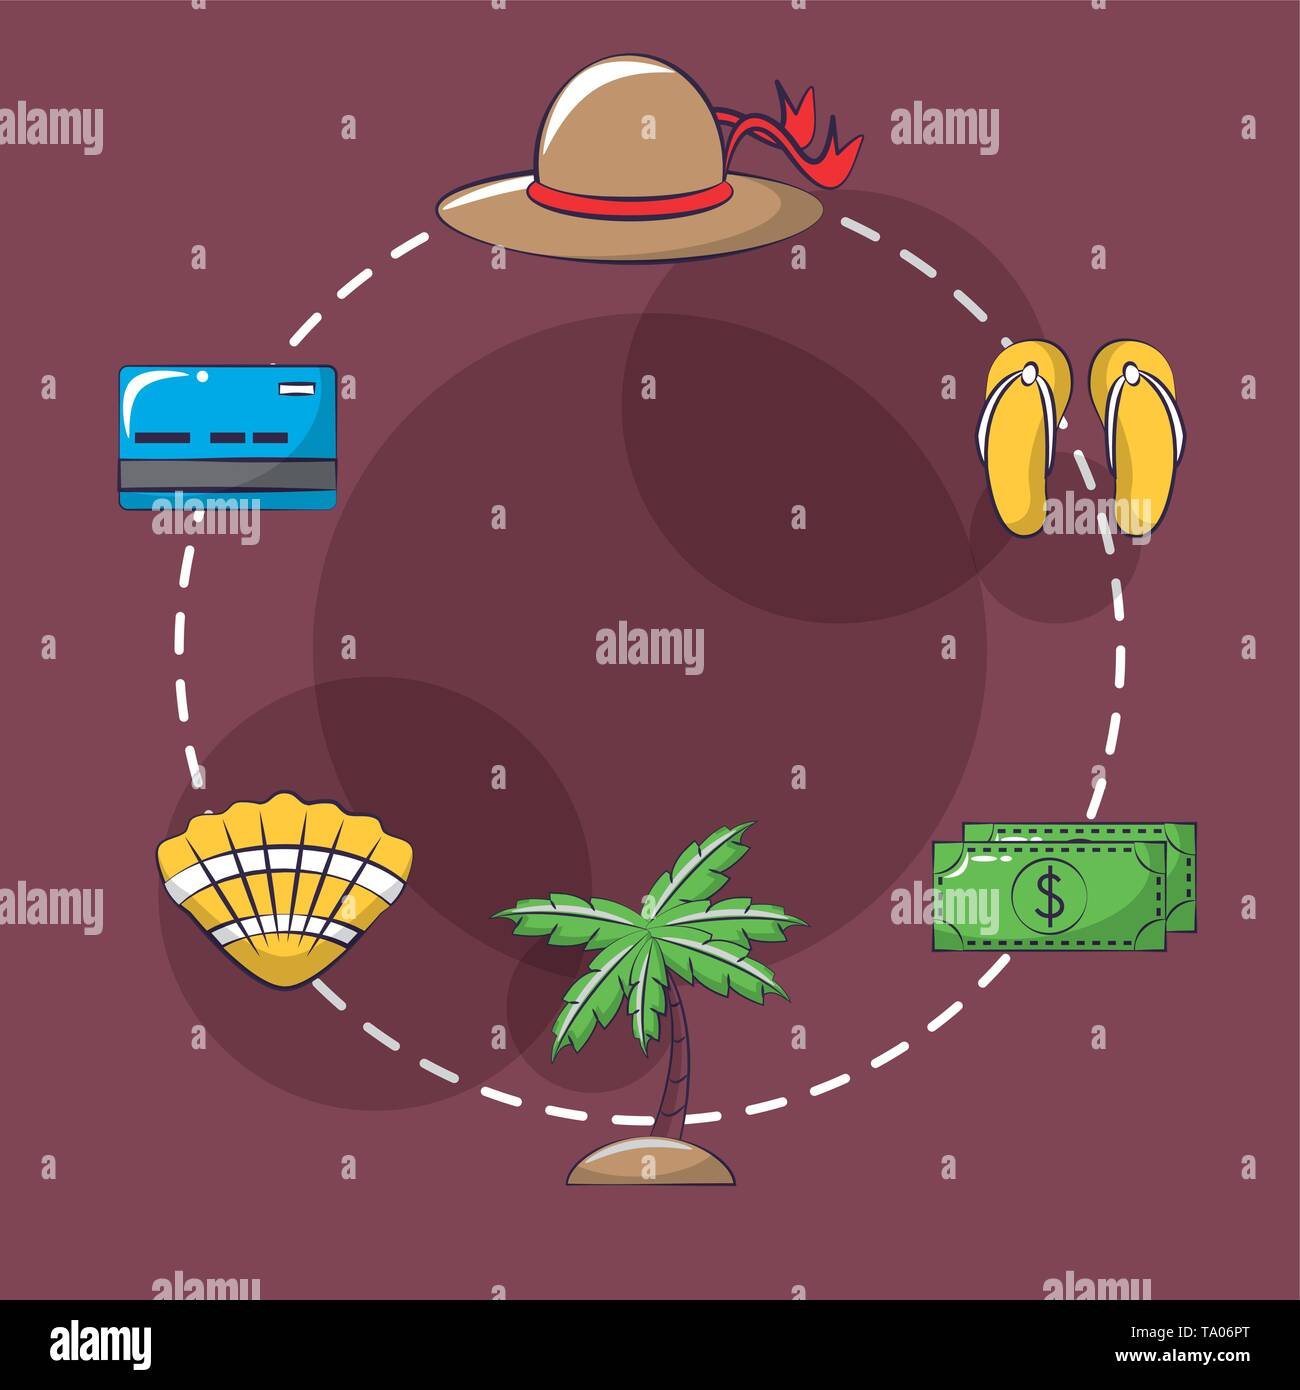 Travel and vacations cartoon icons - Stock Image